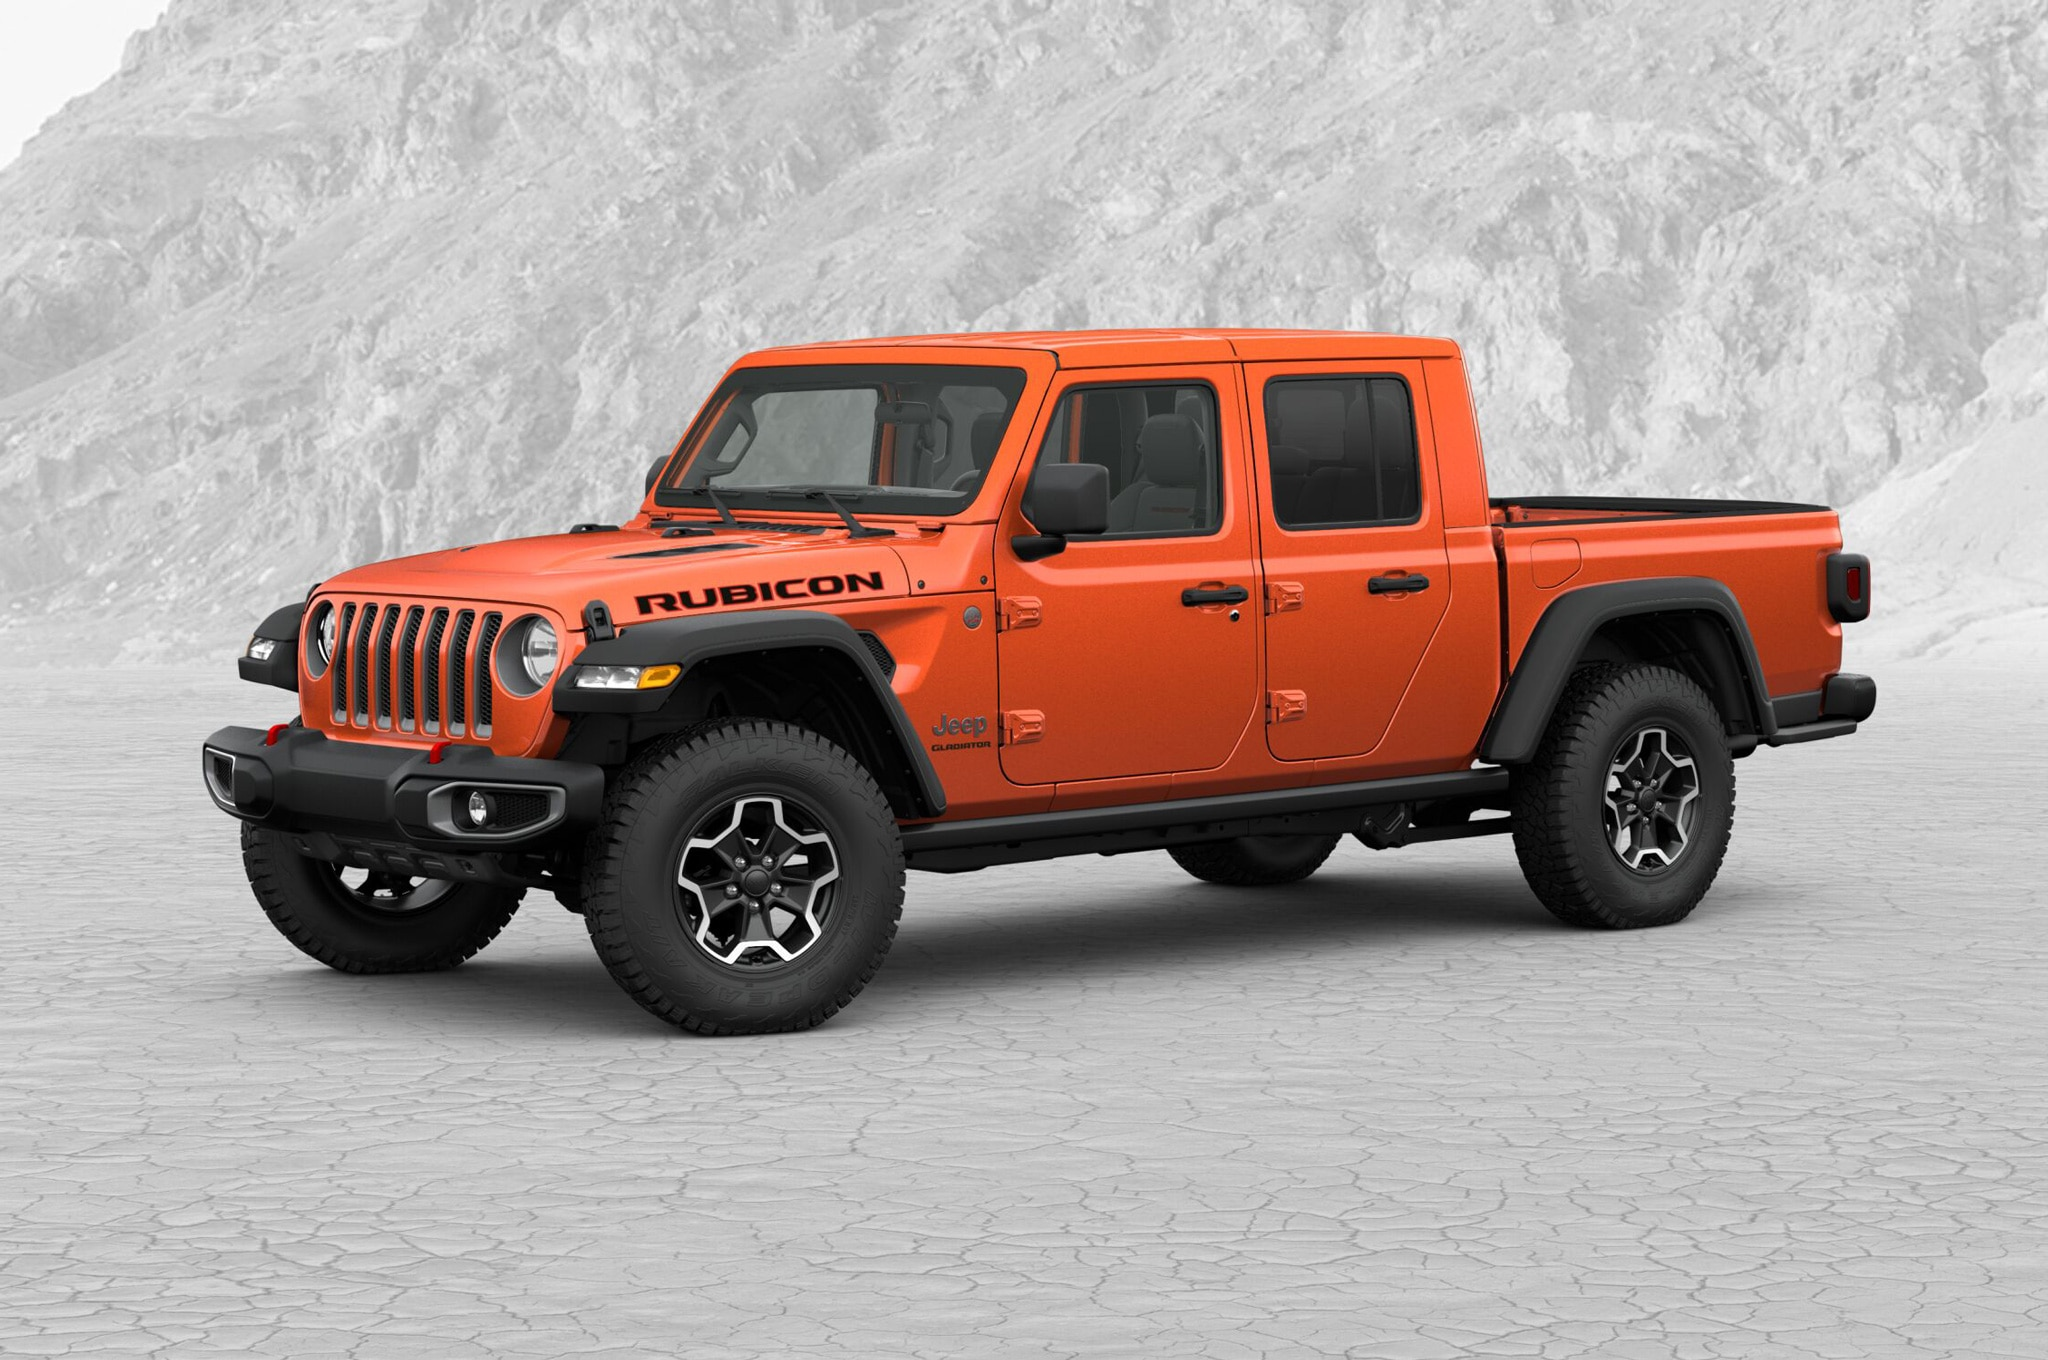 2020 jeep gladiator rubicon build and price exterior front quarter 01 doors and roof on